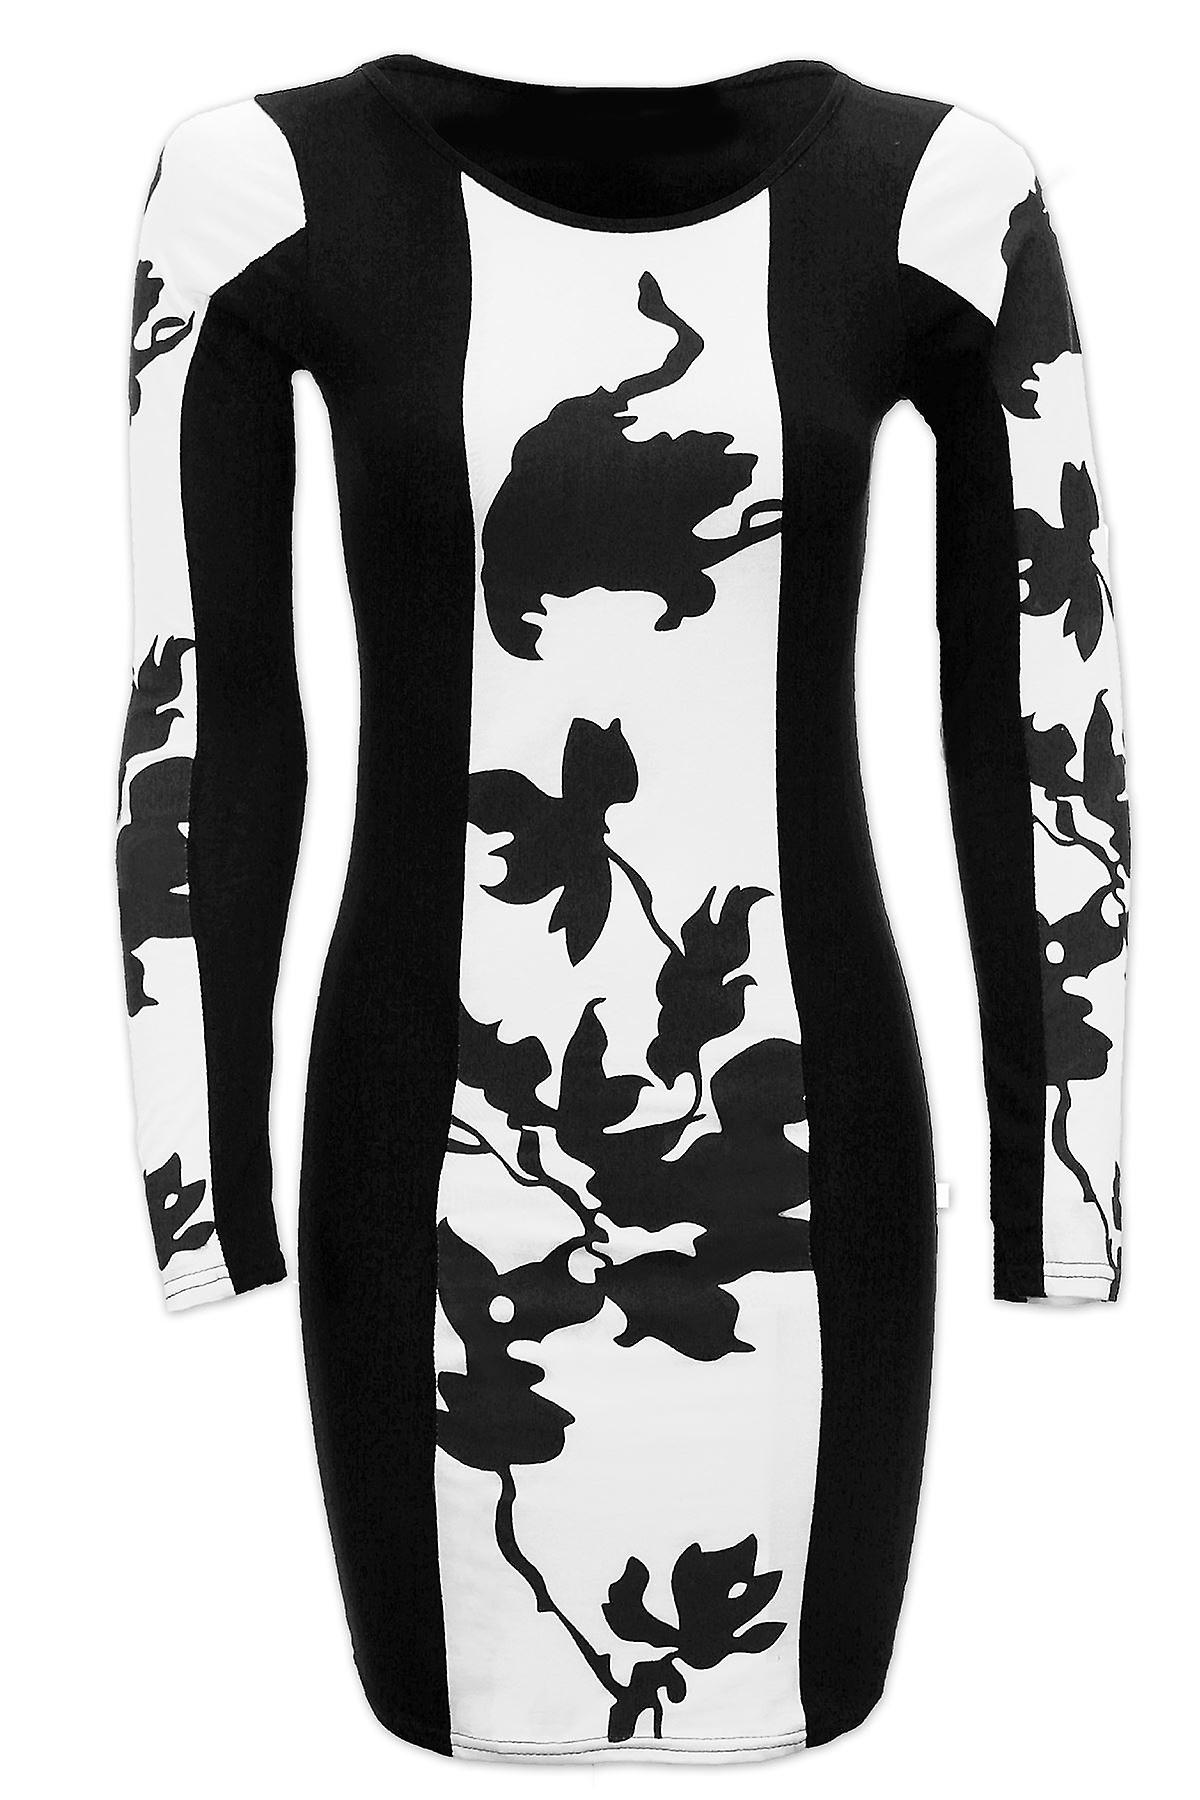 Ladies Celeb Inspired Leaf Print Mini Short Women's Bodycon Dress